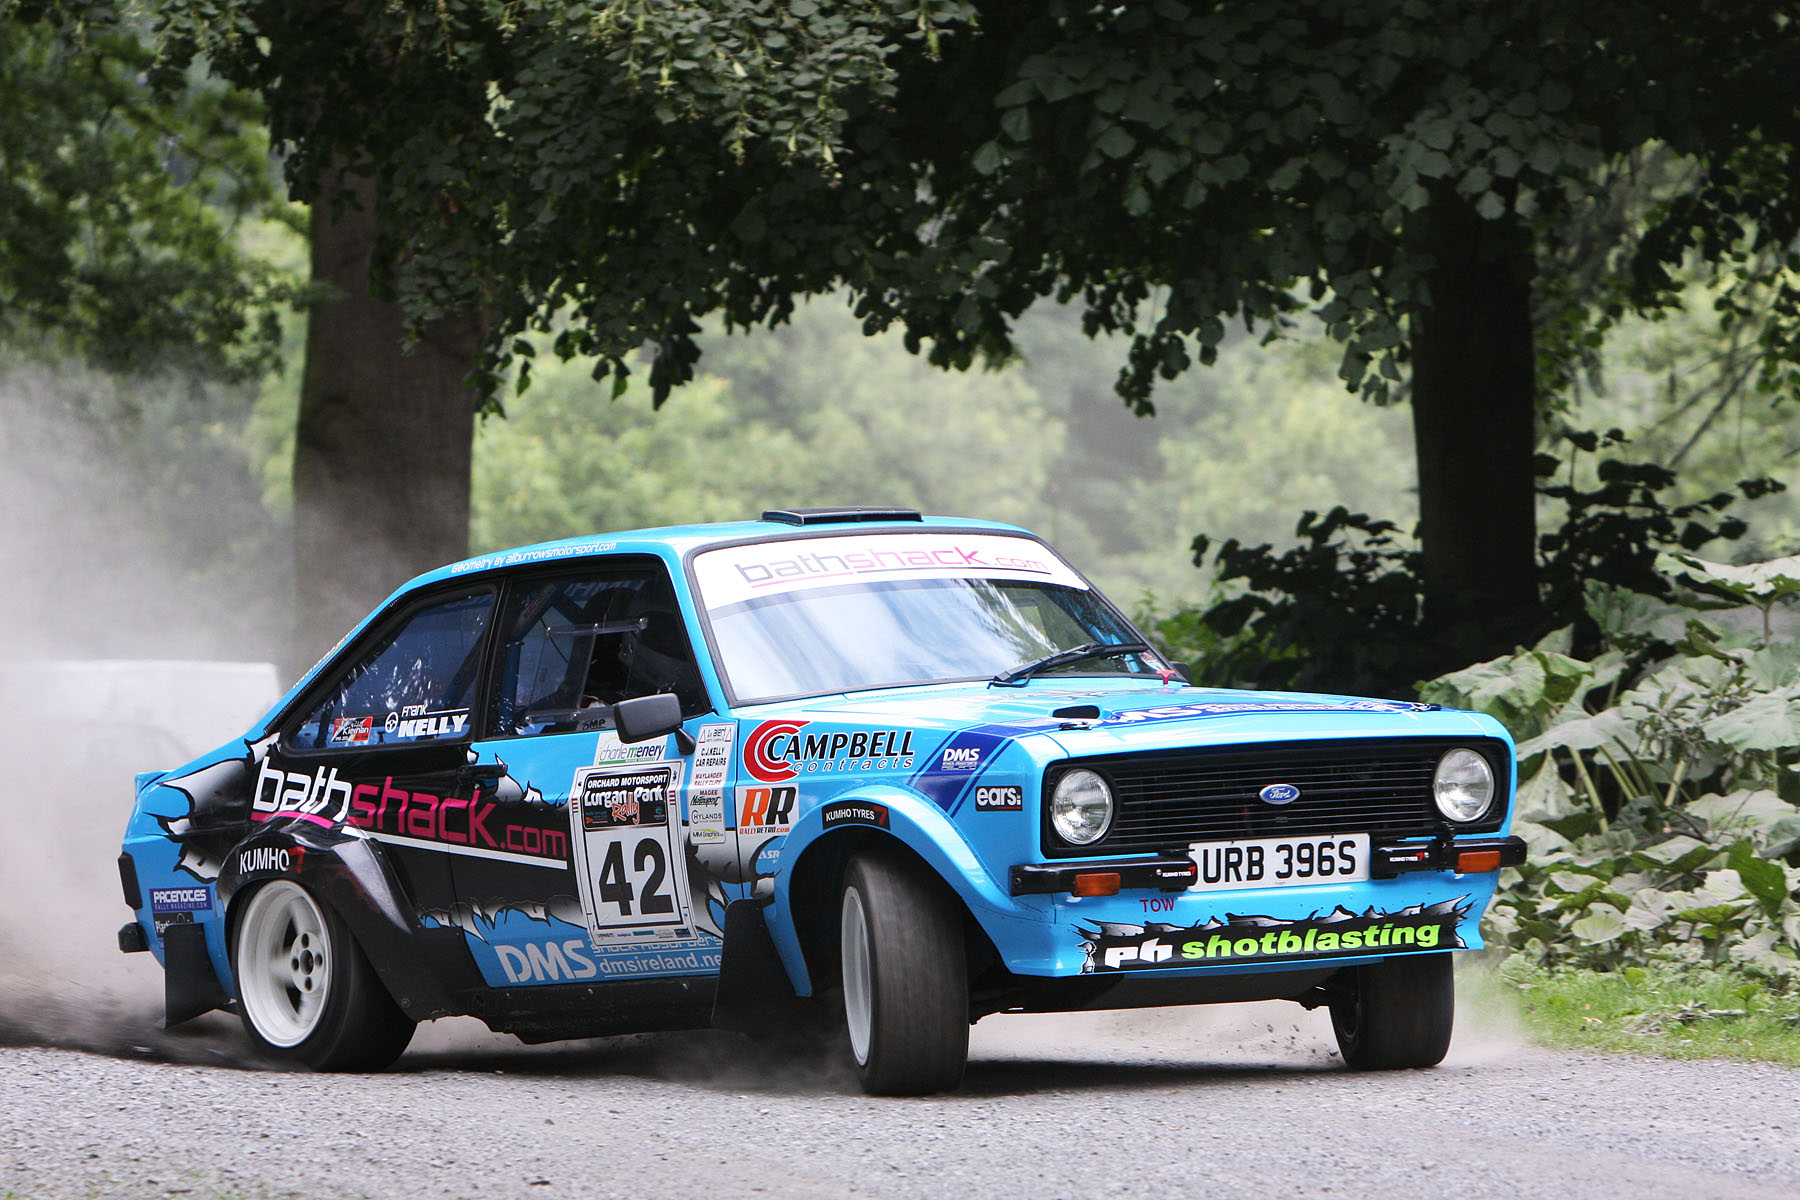 Video: Flatout, sideways and ludicrous, Frank Kelly is a master ...